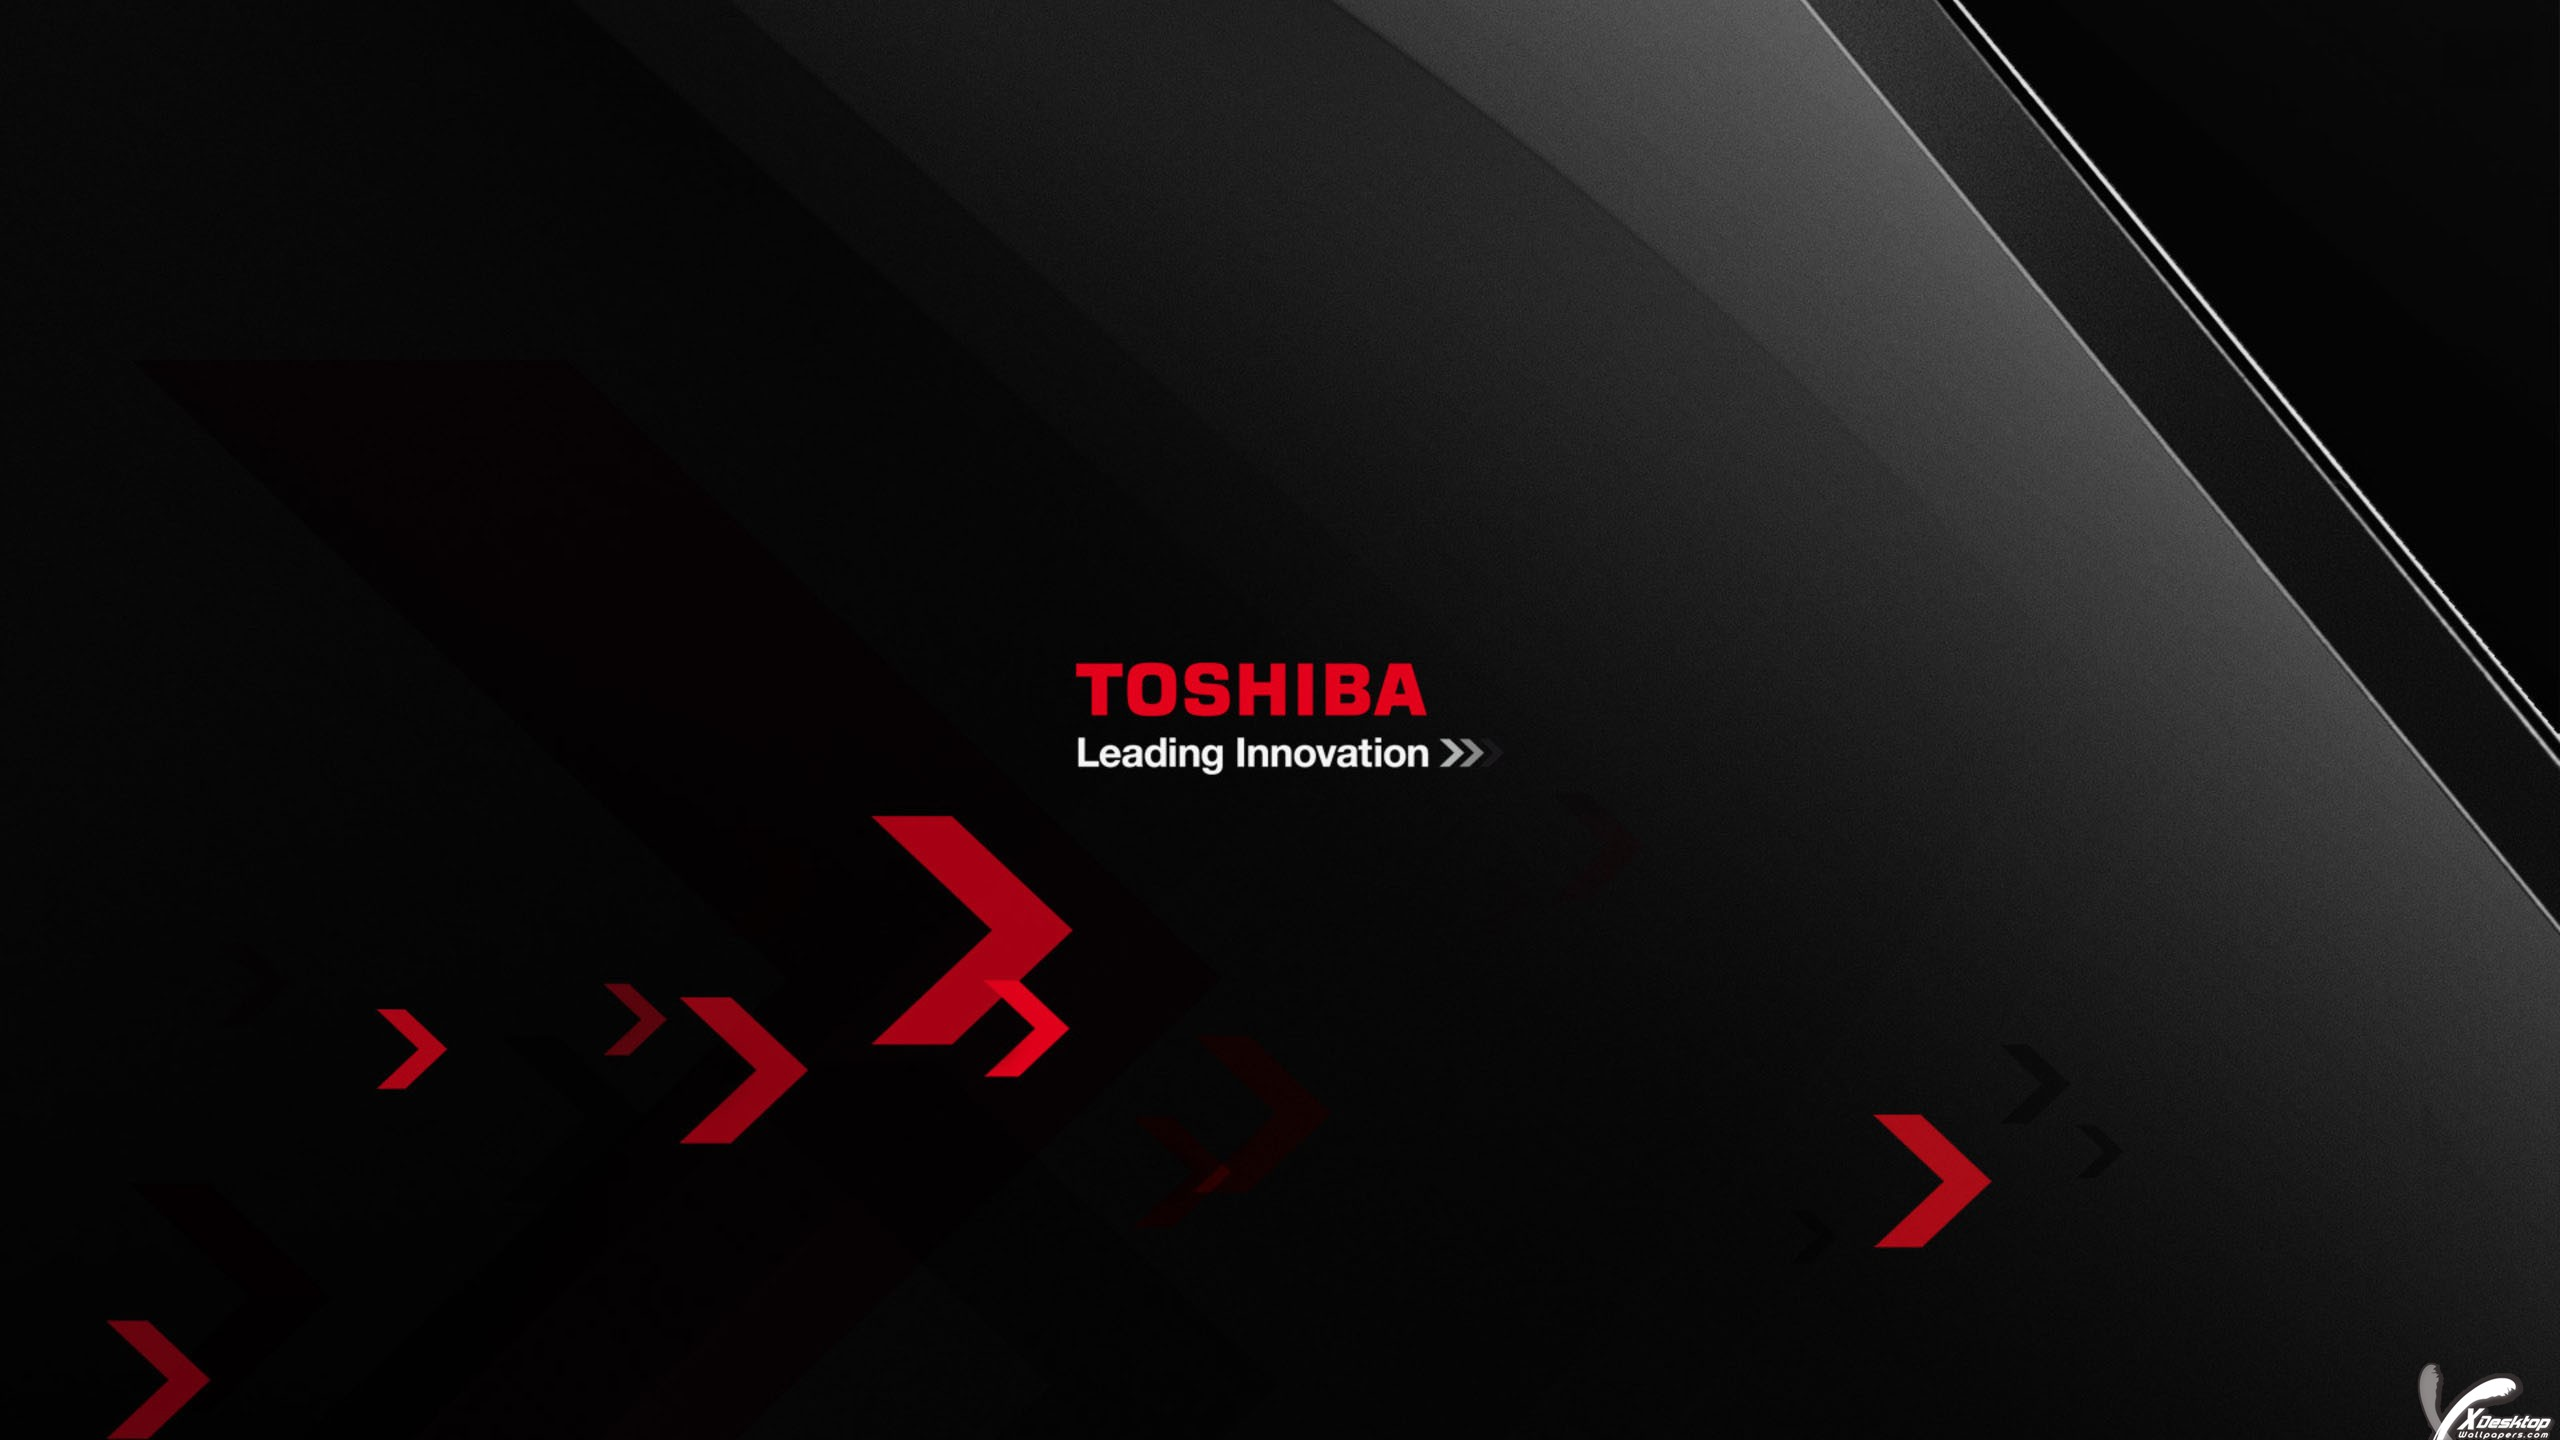 Logo on black backgroung of toshiba leading innovation Innovation windows